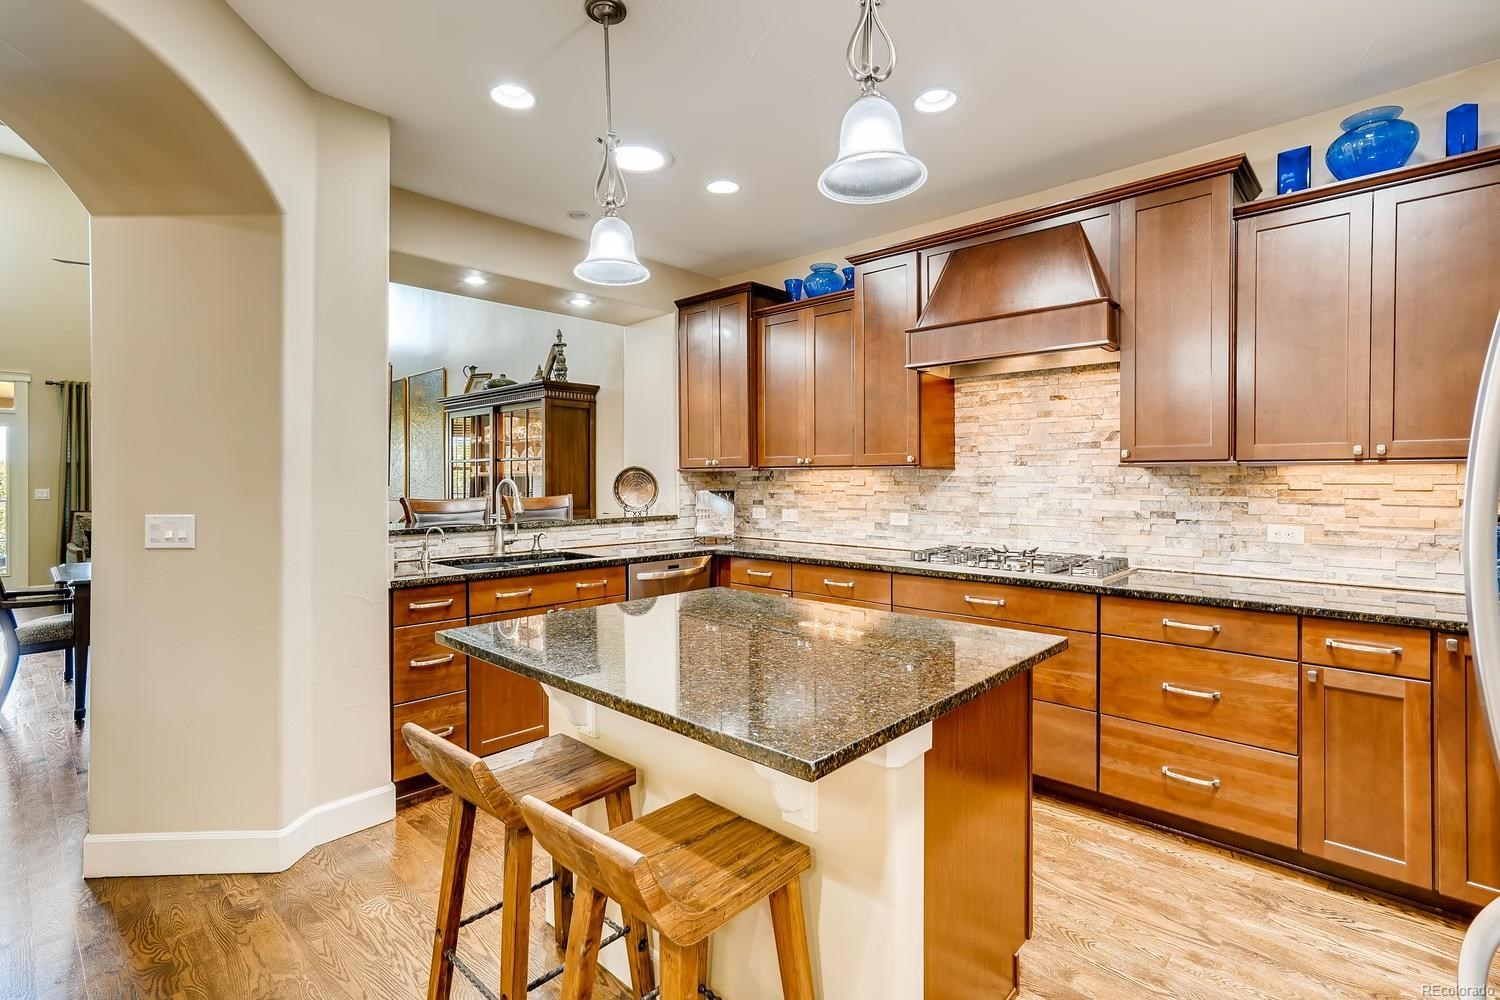 MLS# 2956952 - 11 - 2065 Primo Road #C, Highlands Ranch, CO 80129